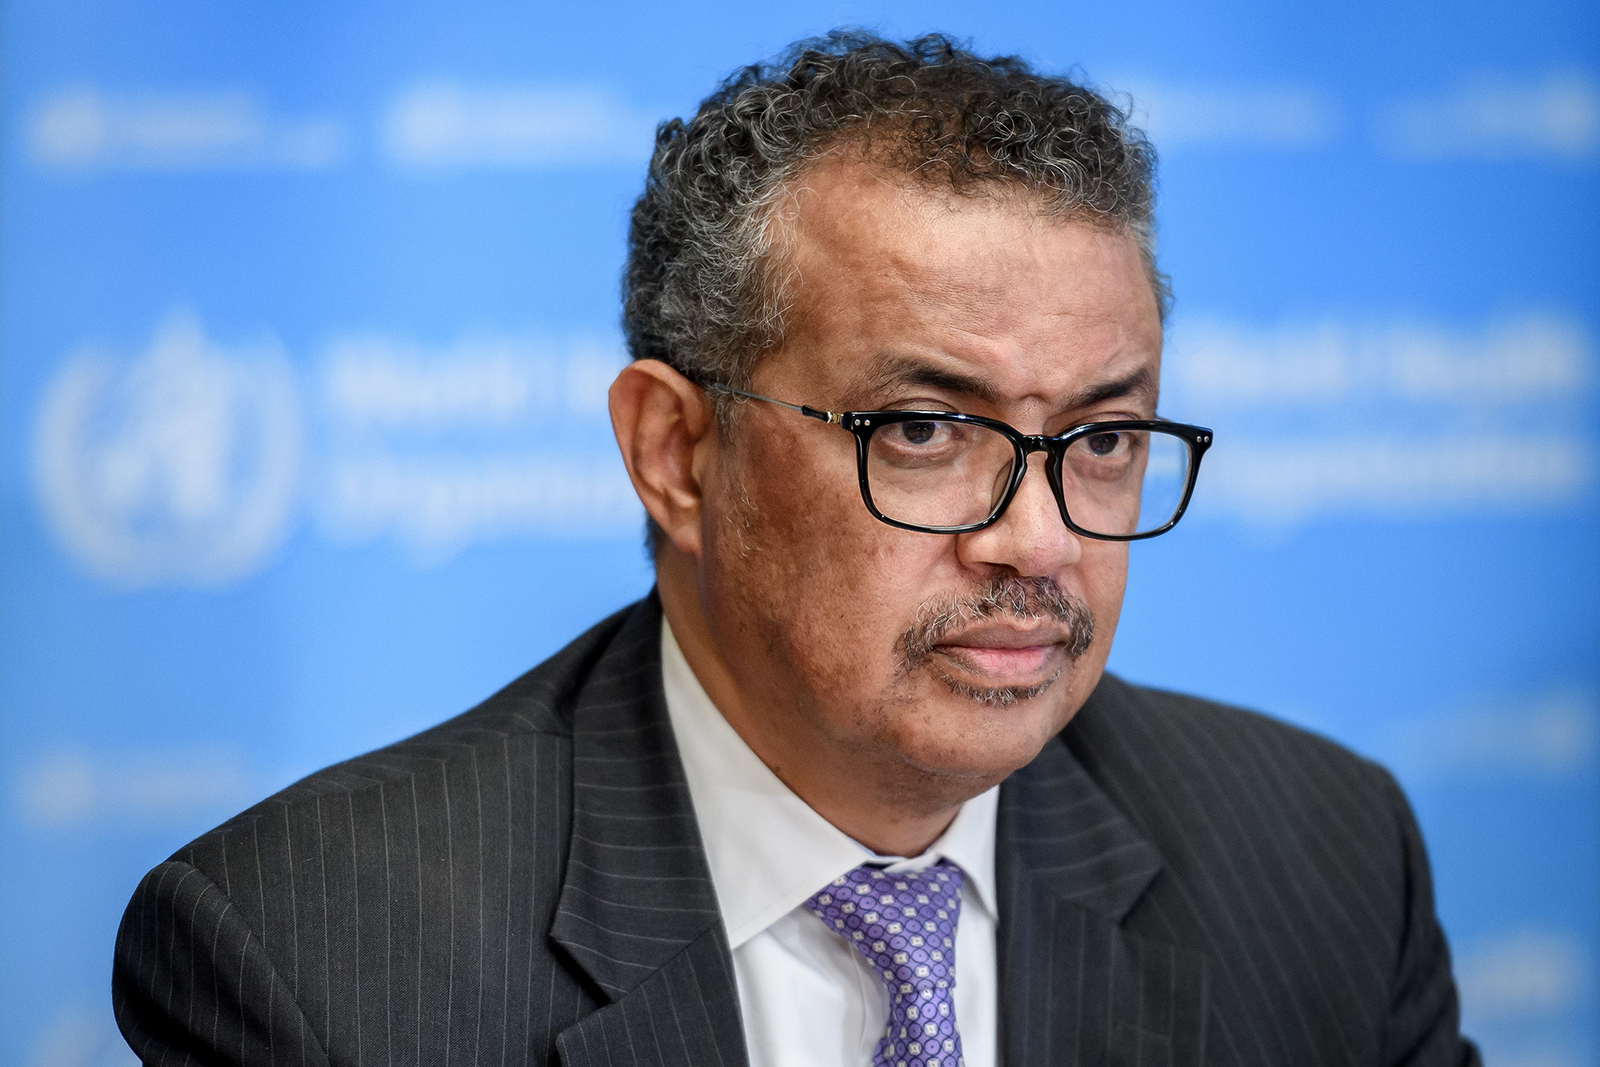 World Health Organization (WHO) Director-General Tedros Adhanom Ghebreyesus attends a daily press briefing on COVID-19 virus at the WHO headquaters in Geneva, on March 9.